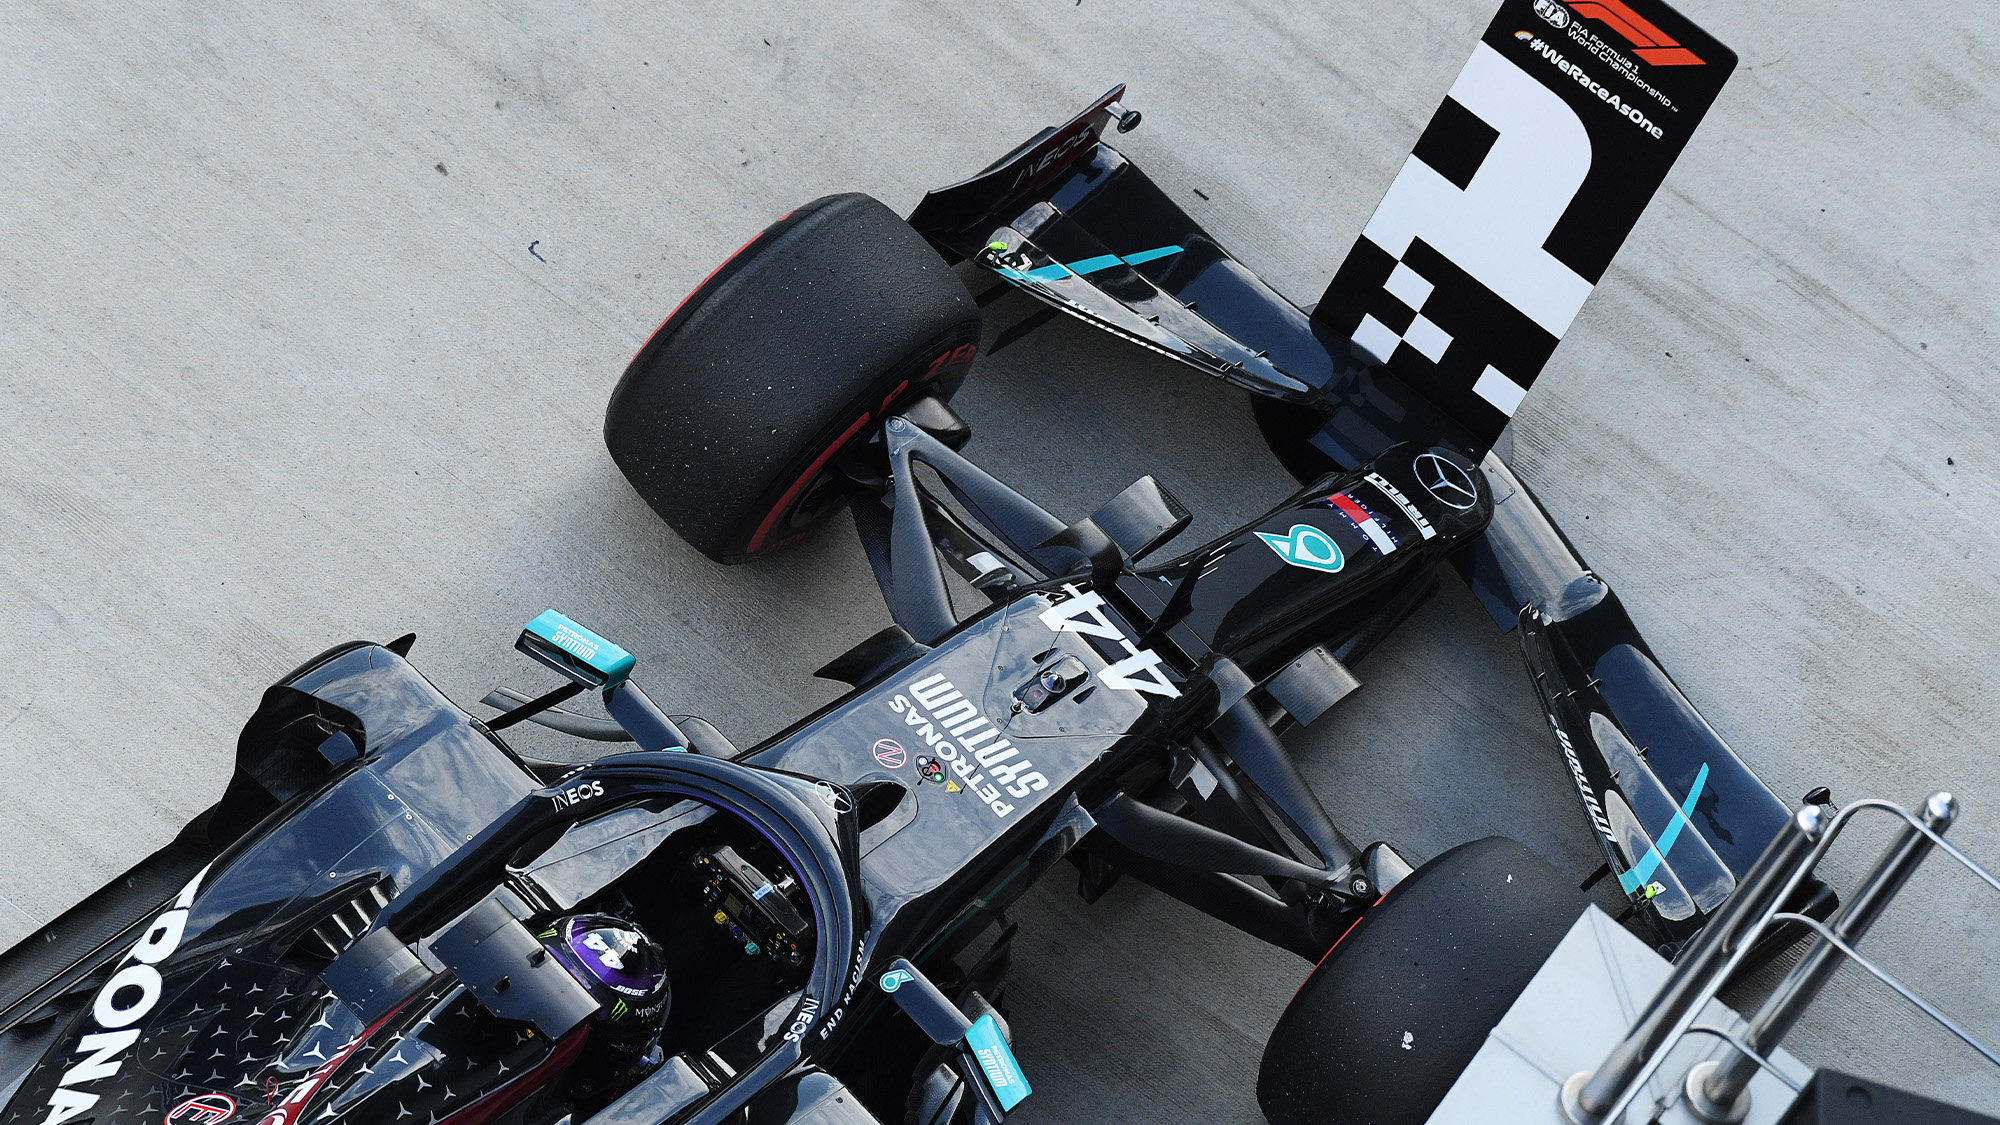 Lewis Hamilton parks his Mercedes in front of the number 1 board after qualifying on pole for the 2020 F1 Russian Grand prix